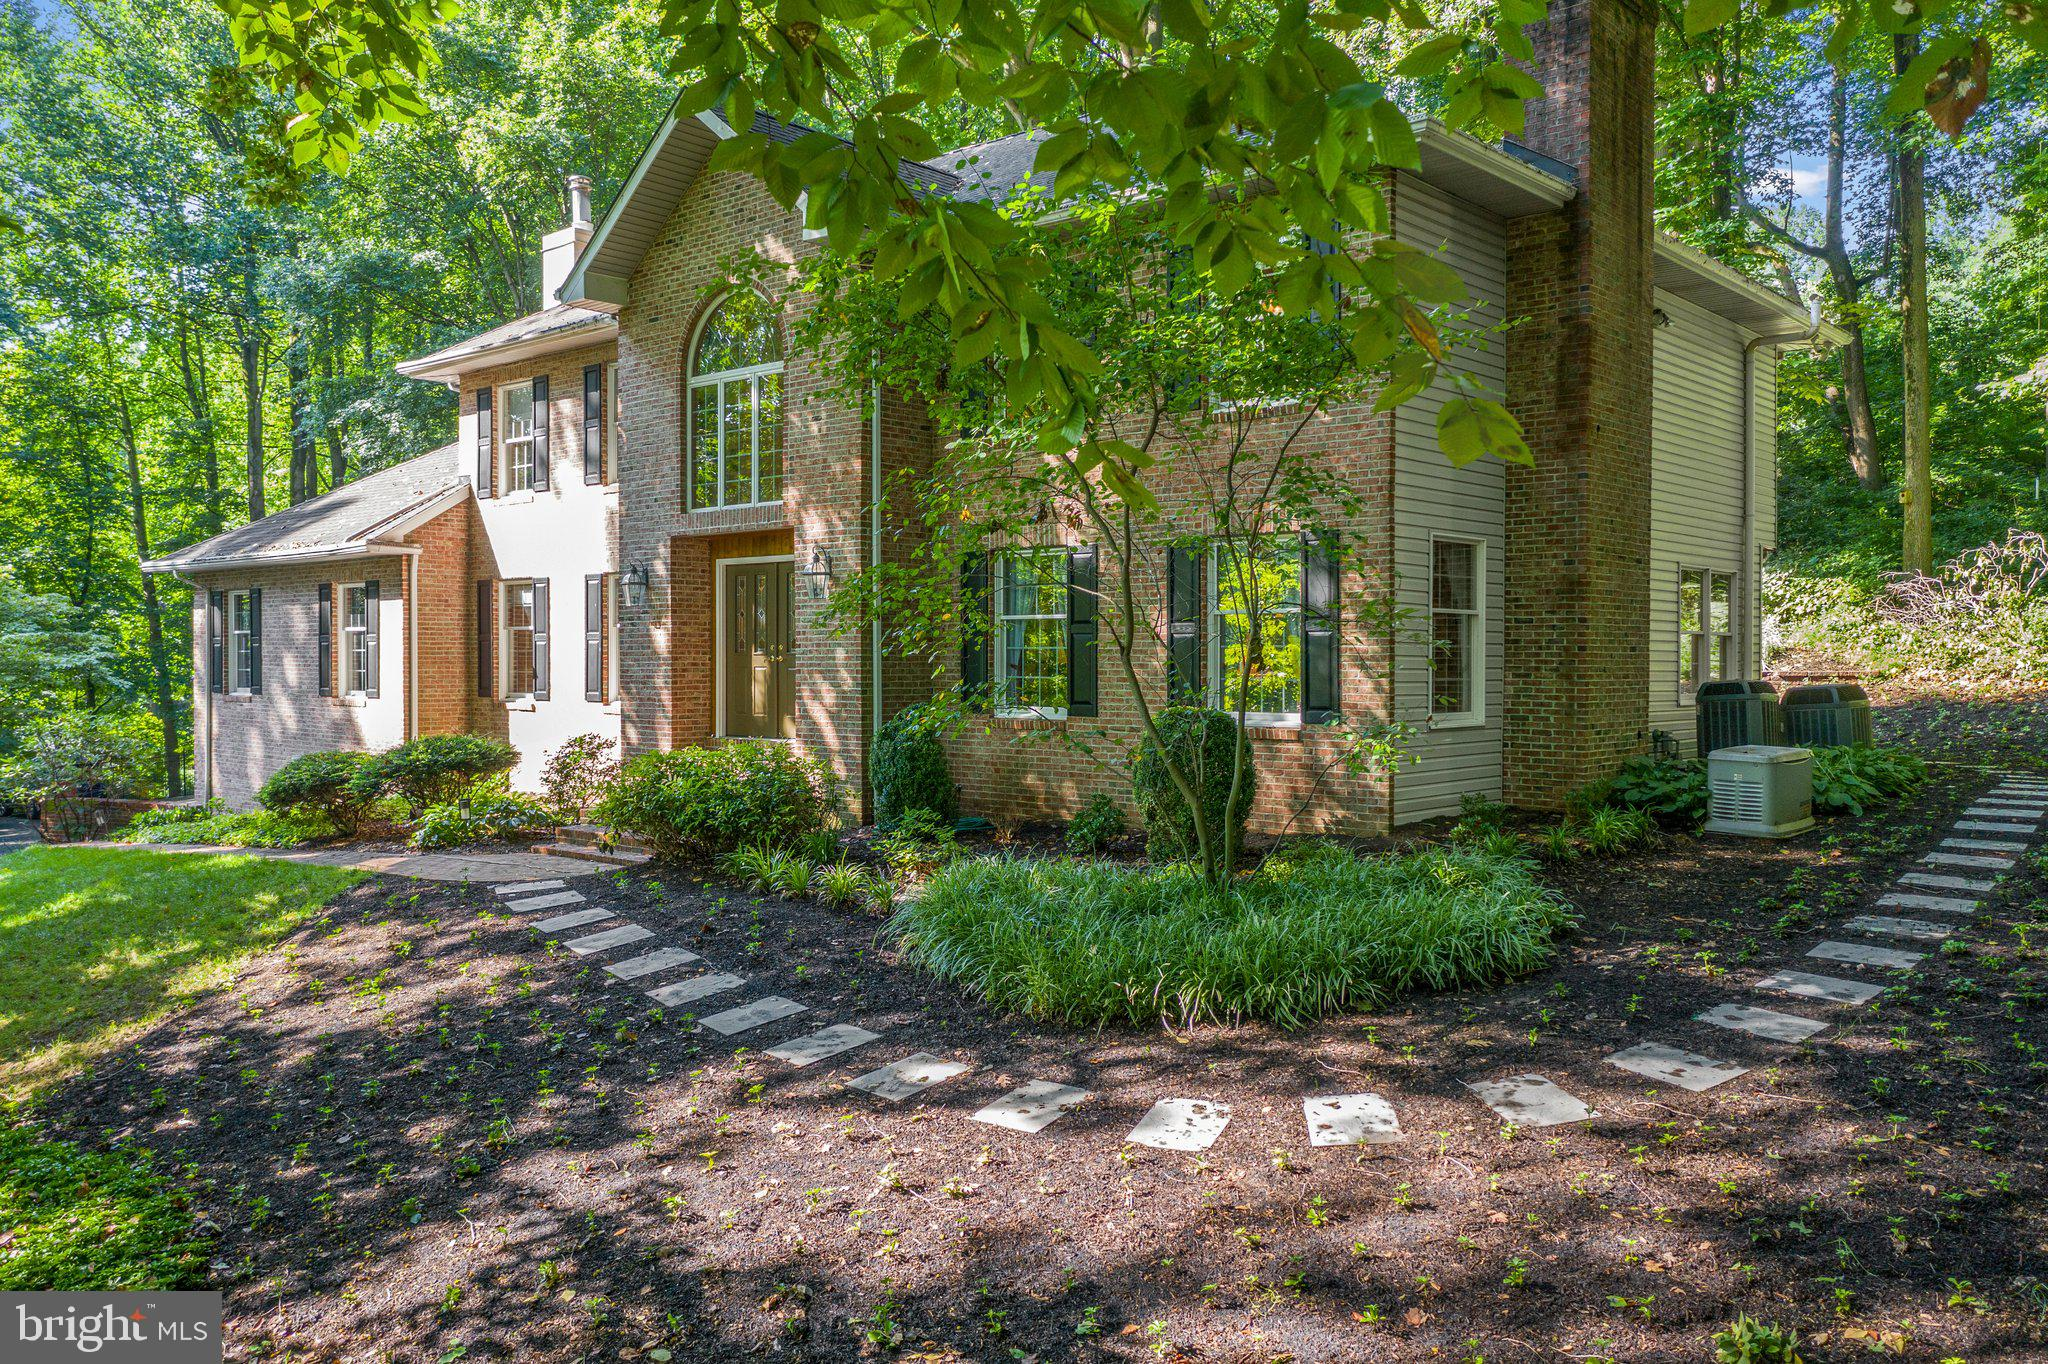 """The winding driveway will lead you to this gracious brick colonial, sitting on the most serene 2.8+ acres located in the heart of Pike Creek/Newark. You will be welcomed into this home through the double doors to the stunning two-story foyer. Flanking the foyer is the formal dining room to the left and a sunk-in living room to the right, which features a lovely raised hearth brick fireplace. Continue walking and enter the fully renovated gourmet kitchen, complete with an ample sized island, lots of granite counters, upgraded appliances and a wet bar featuring an under counter refrigerator. Around the corner from the kitchen is the well sized family room and it includes a stone raised hearth gas fireplace, recessed lighting and lots of natural light entering through the abundance of windows. Don't miss the flexible office area area off of the kitchen, showcases built-in bookcases and recessed lighting. The bright sunroom, first floor laundry room and half bath complete the first floor.  Ascend to the second level and enter the large master bedroom, which includes a third fireplace, walk-in closet and bathroom featuring a free standing soaking tub, two vanities, spacious shower and don't miss the  tray ceiling with up-lights featuring a hand painted """"starry-night"""" mural. There are three additional bedrooms and a renovated full bathroom, completing the second level. The lower level allows for a great theatre area, guest suite and full kitchen! The three-car bay garage allows for ample parking and there is an oversized parking area at the top of the driveway! The back deck is accessible from both the kitchen and sunroom making it perfect for entertaining friends and family while enjoying the gorgeous backyard.  This lovingly maintained and upgraded home is calling for you to call it yours!"""